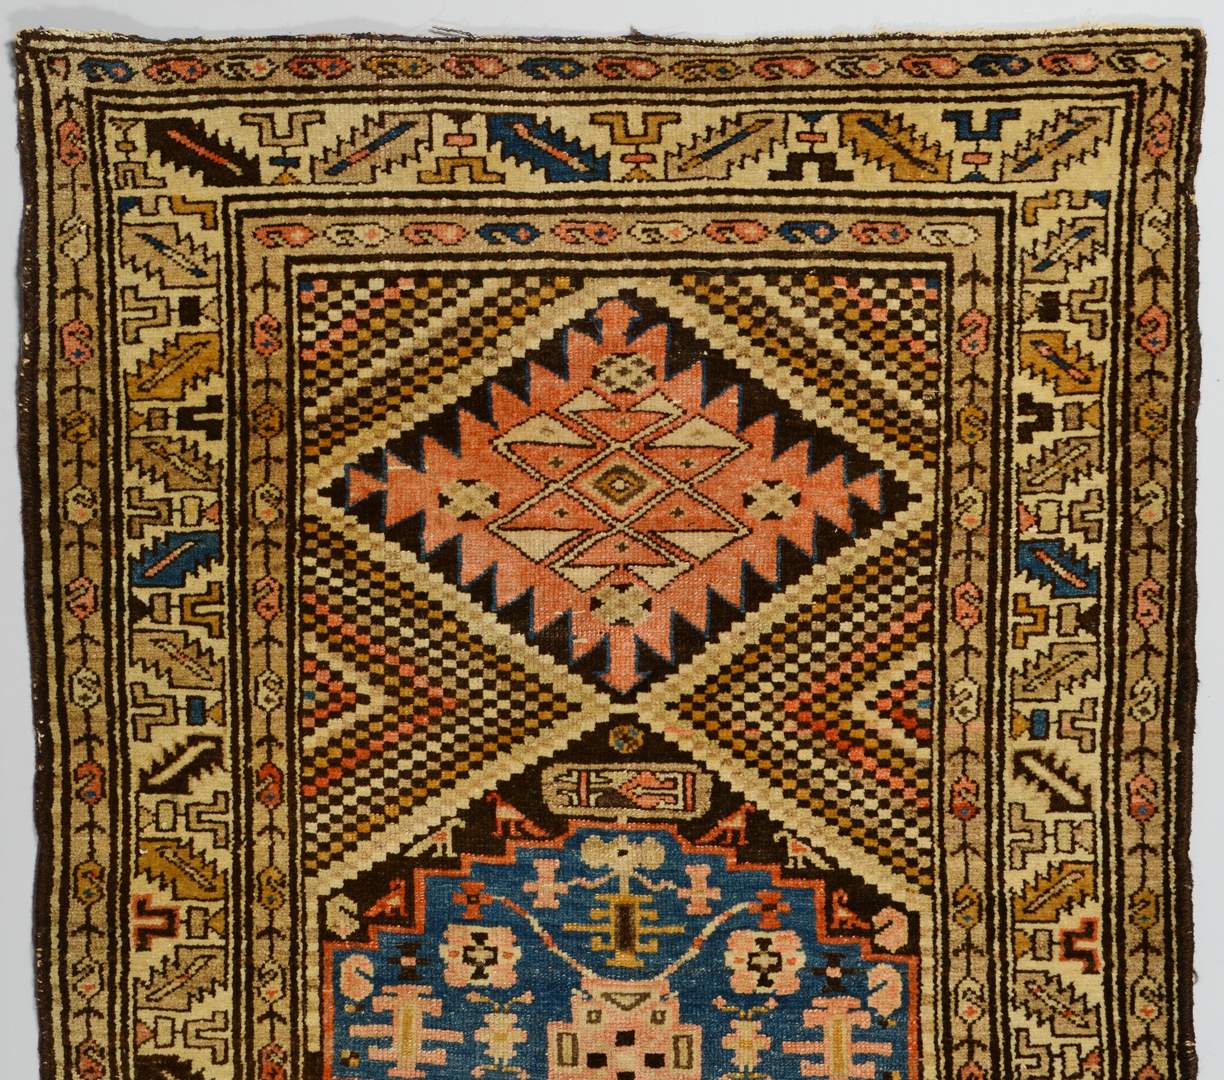 Lot 3088361: Northwest Iran Persian Rug